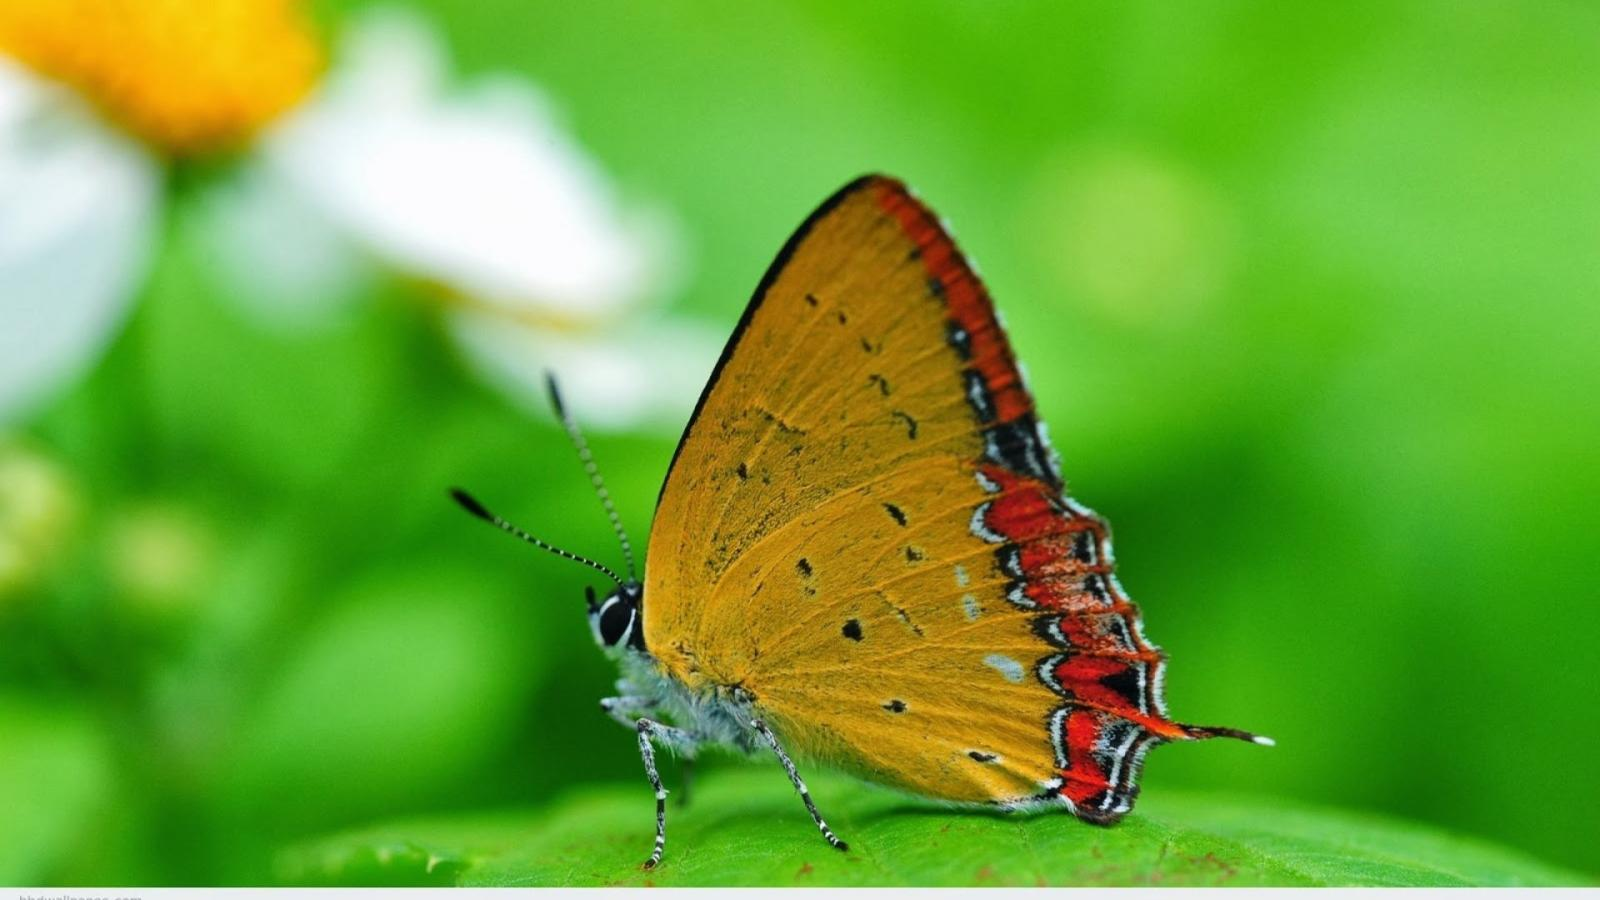 Butterflies Wallpapers Hd Download: Full HD Nature Images 1080p Desktop With Macro Photo Of